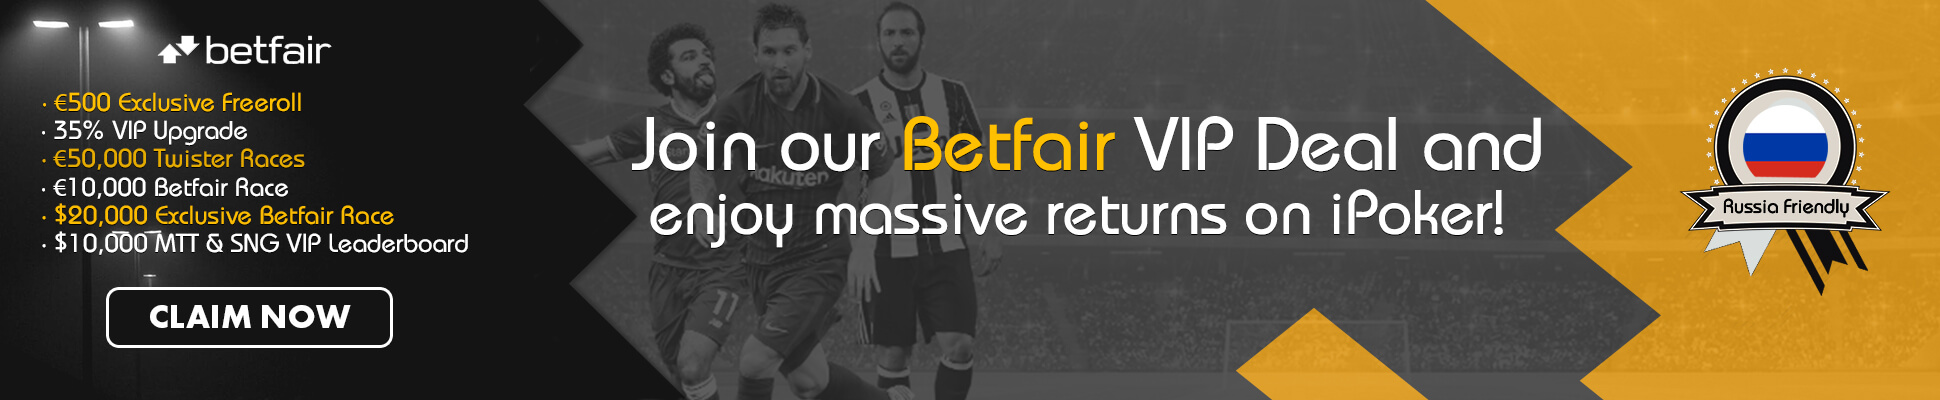 betfair-slider-banner-December